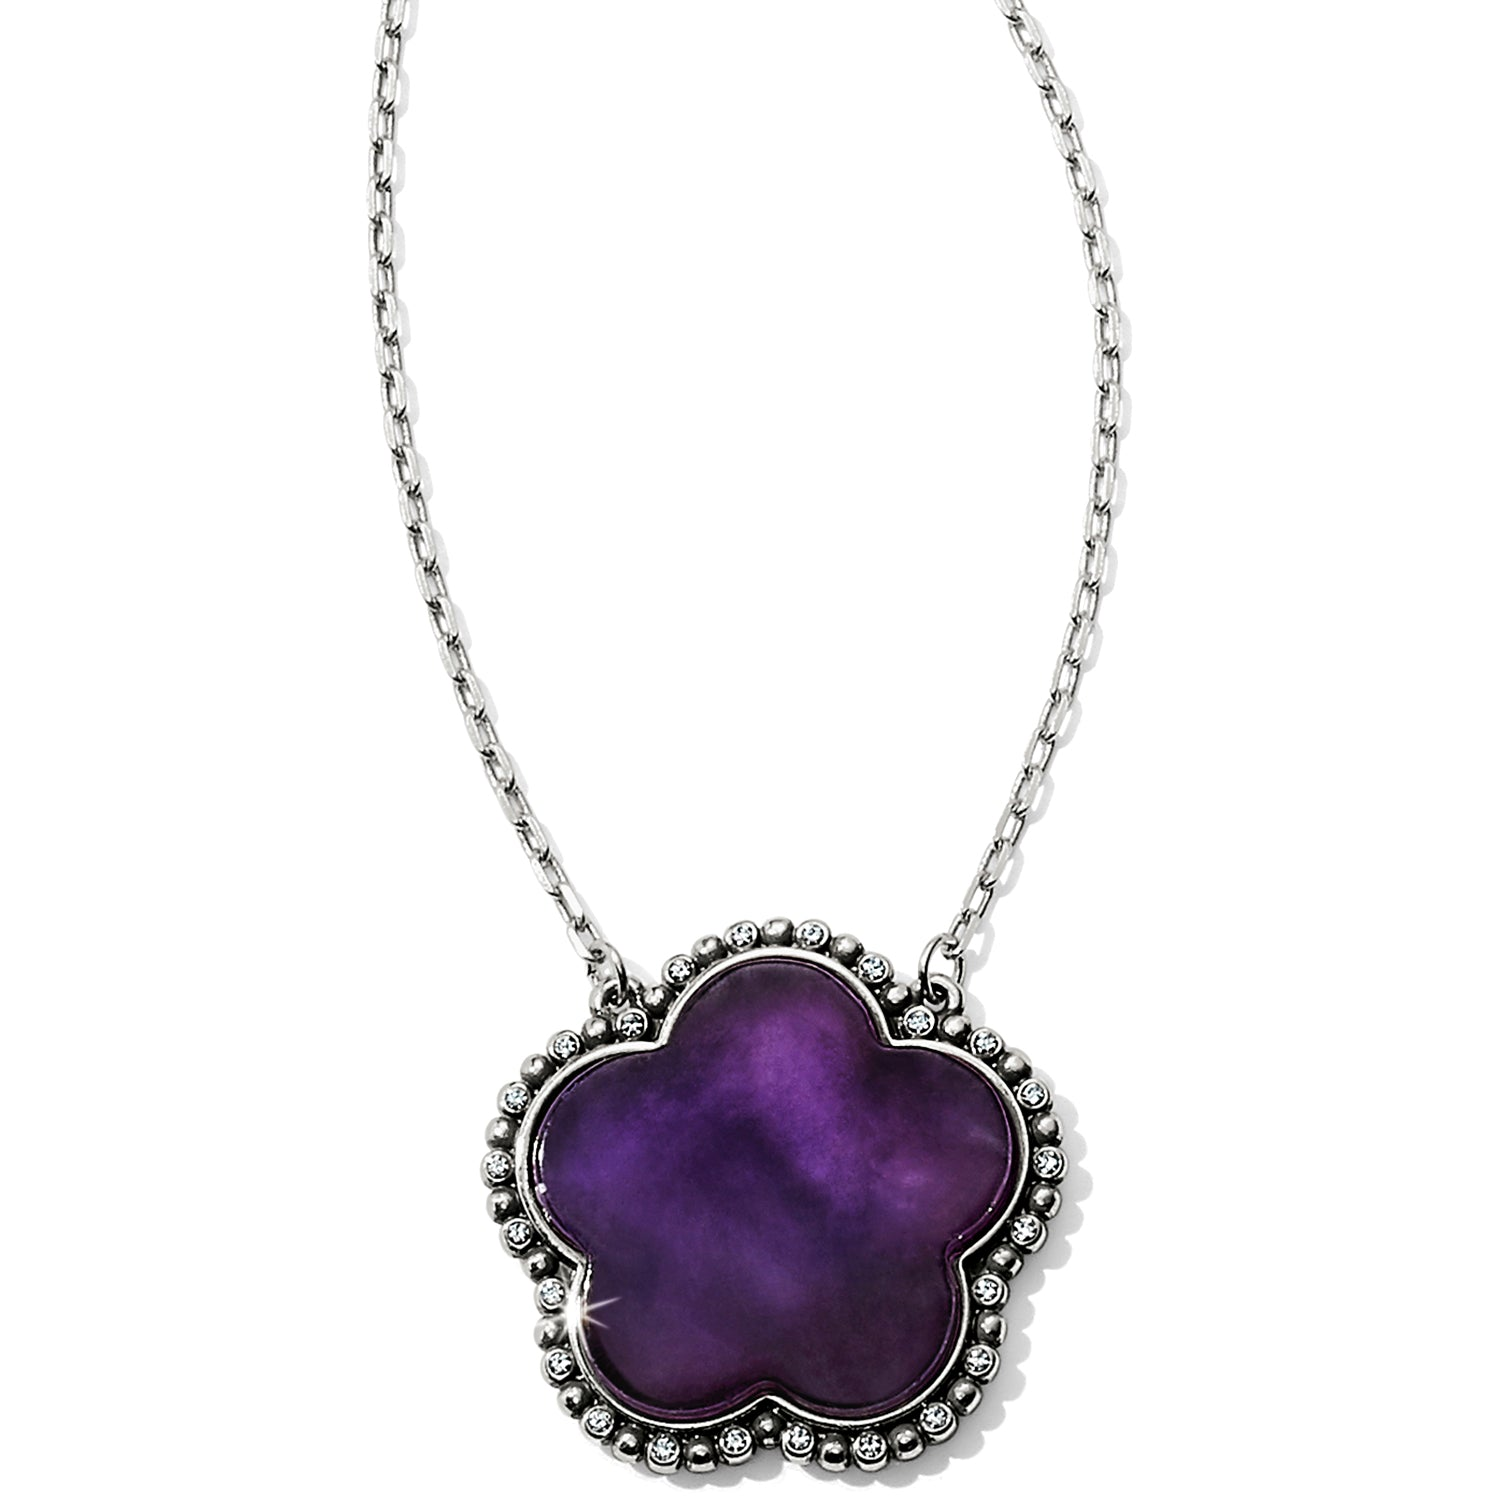 "African amethyst is showcased in this stylized flower, with its natural markings adding to its unique beauty;  Closure: Lobster Claw Length: 18"" - 22"" Adjustable Pendant Drop: 1"" Finish: Silver plated Stones: African amethyst"